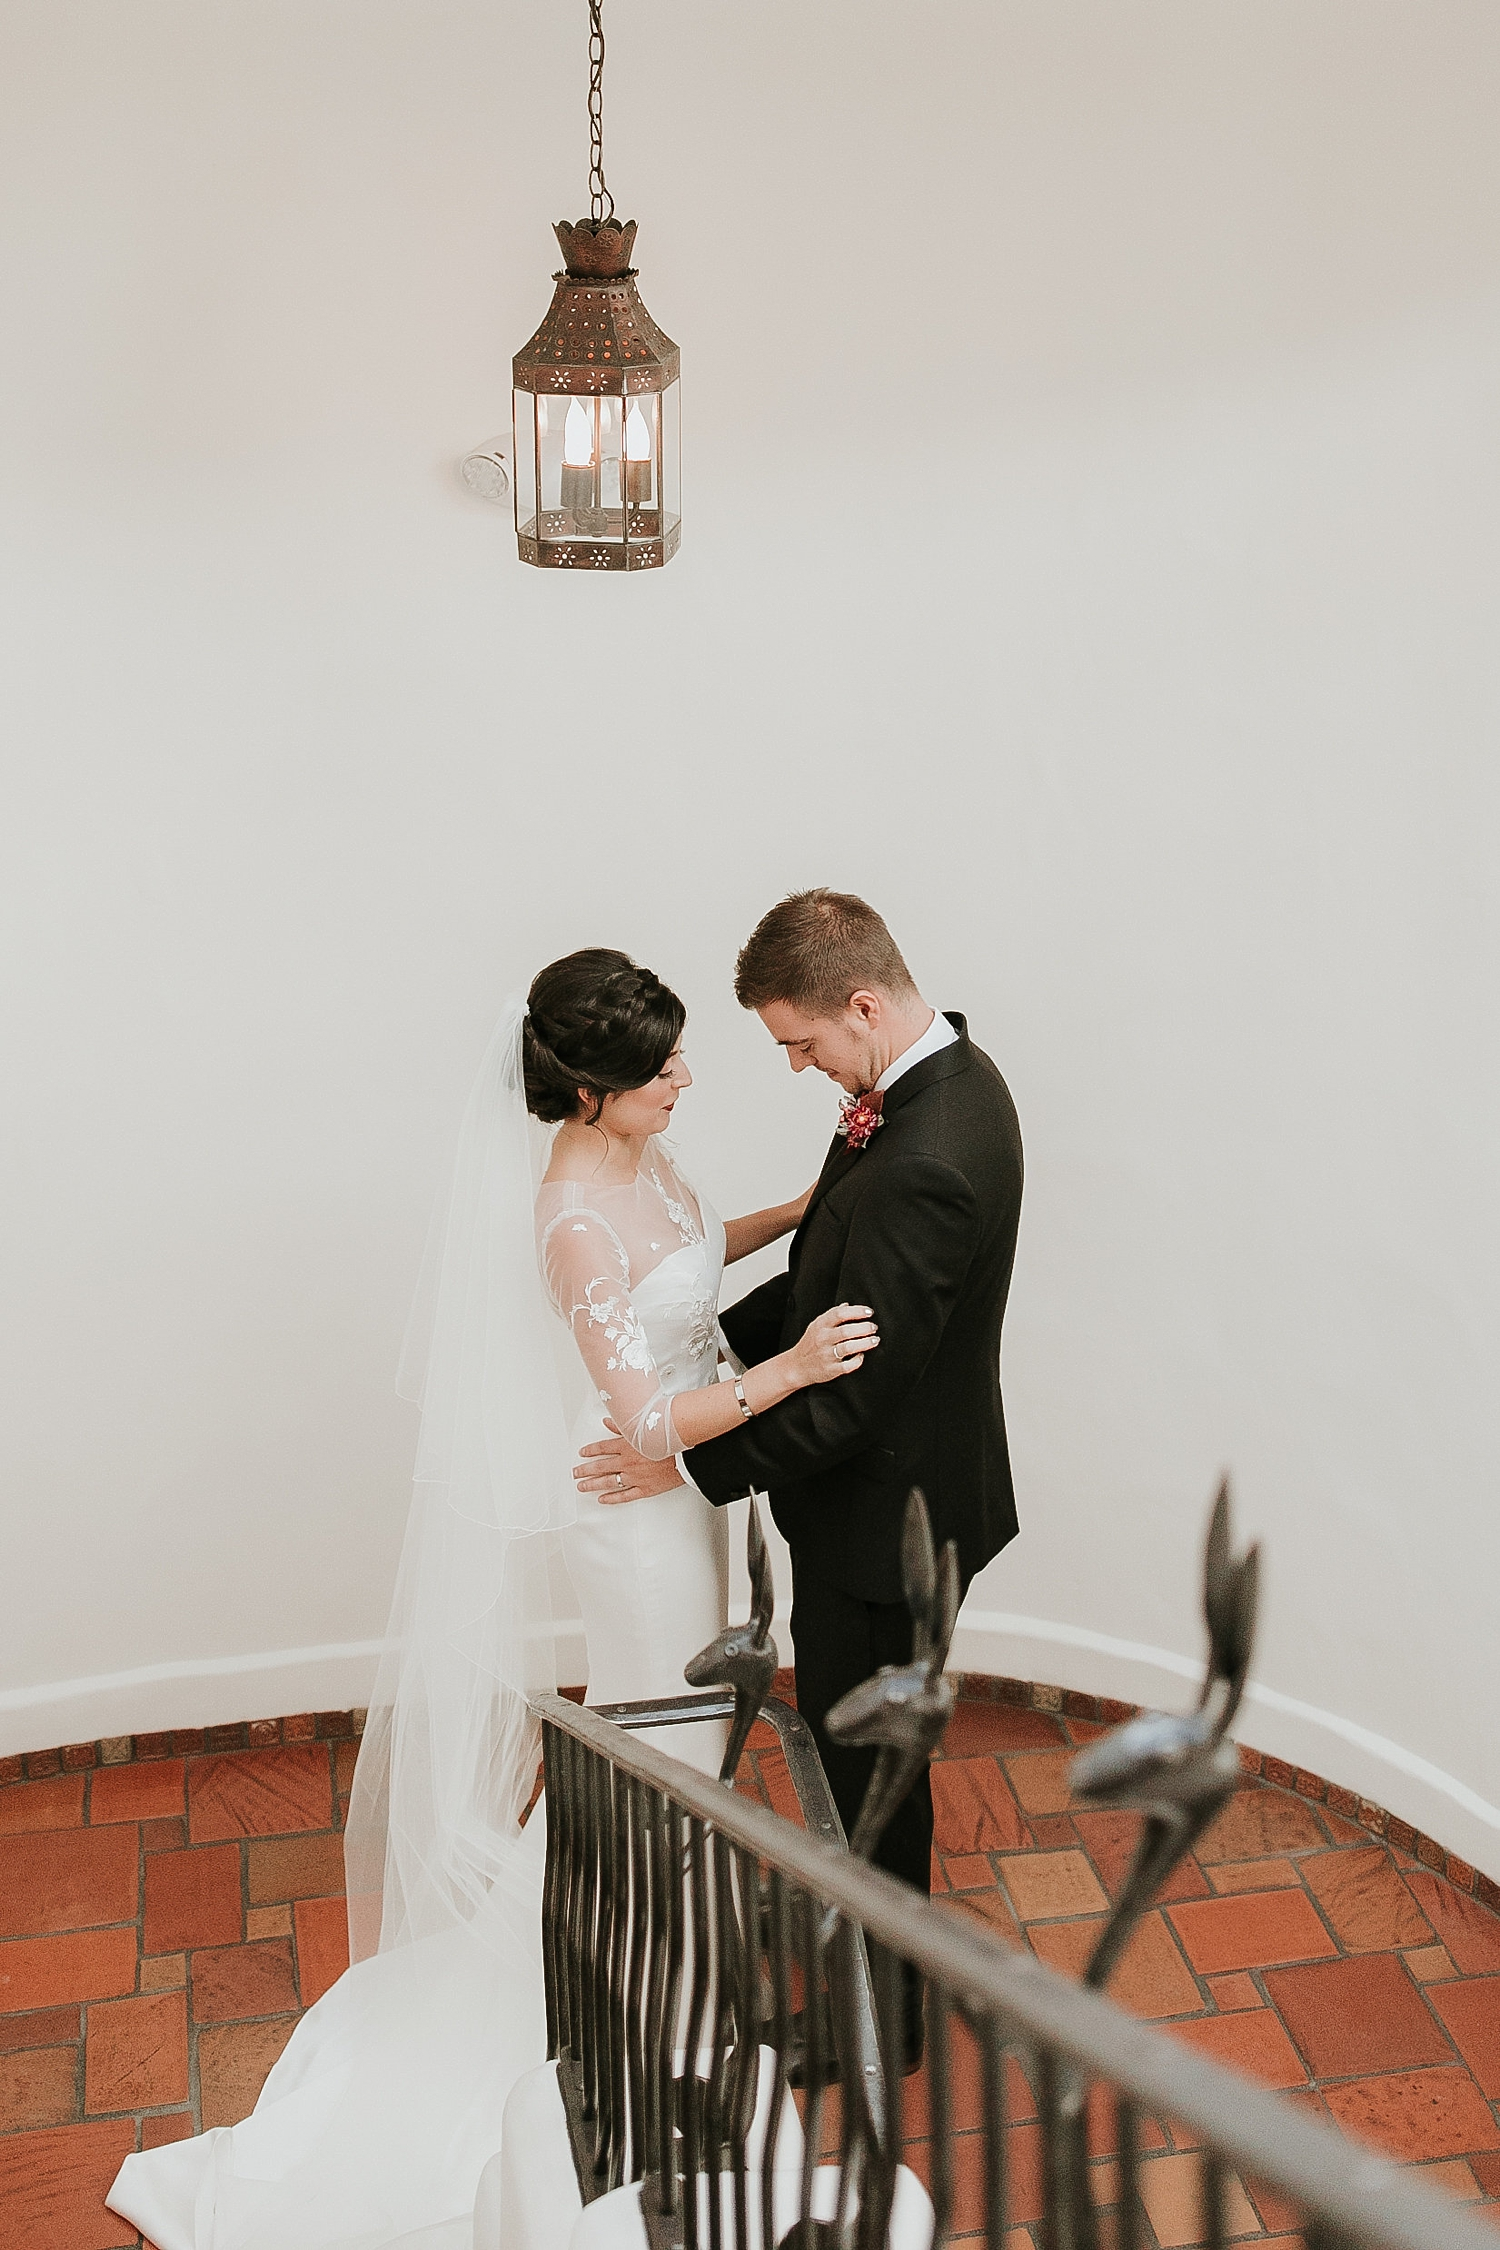 Alicia+lucia+photography+-+albuquerque+wedding+photographer+-+santa+fe+wedding+photography+-+new+mexico+wedding+photographer+-+la+fonda+santa+fe+wedding+-+santa+fe+fall+wedding+-+la+fonda+fall+wedding_0007.jpg